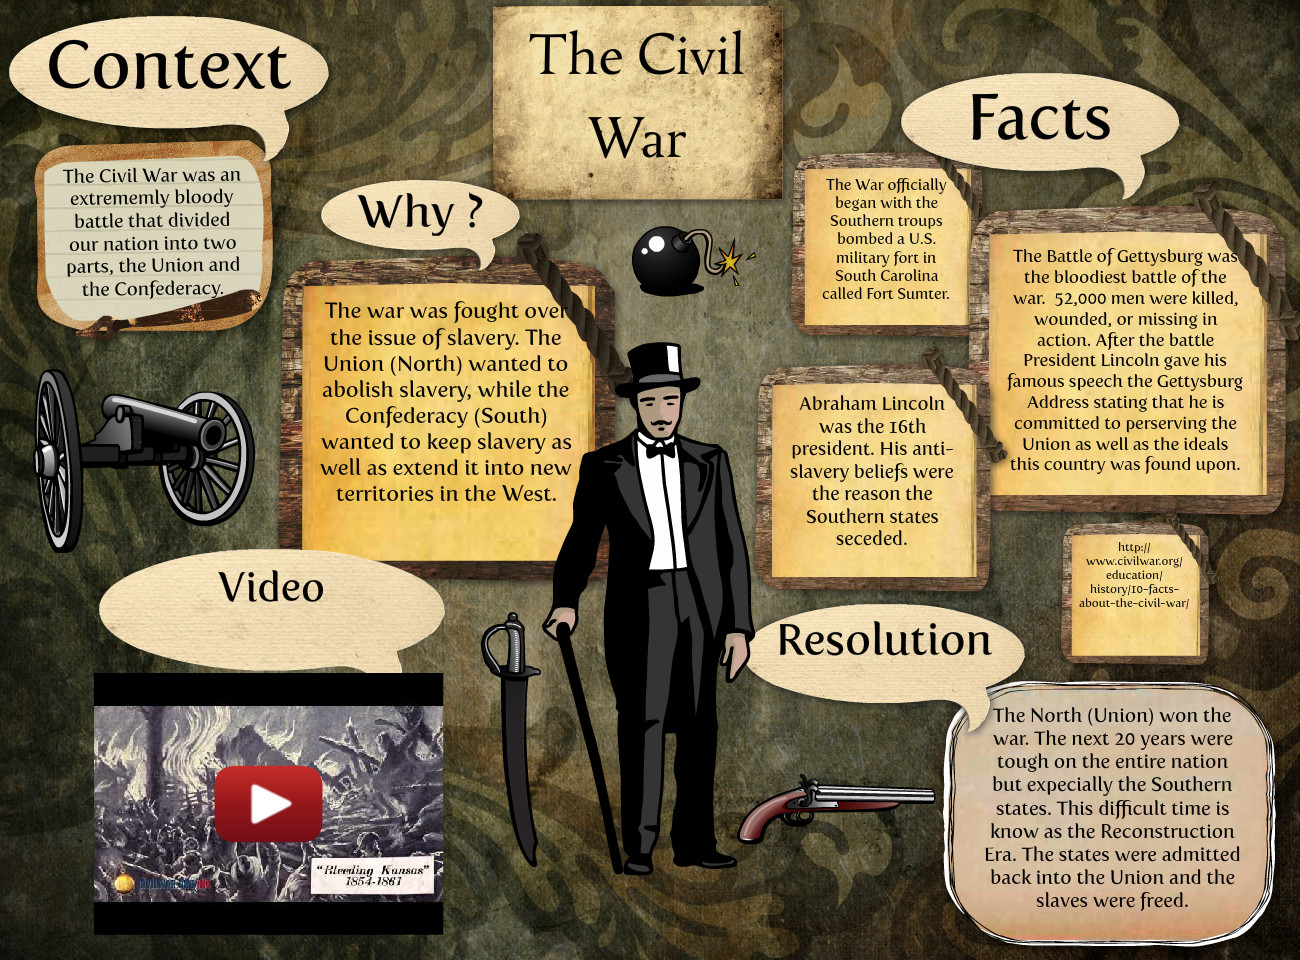 why was the civil war fought over slavery